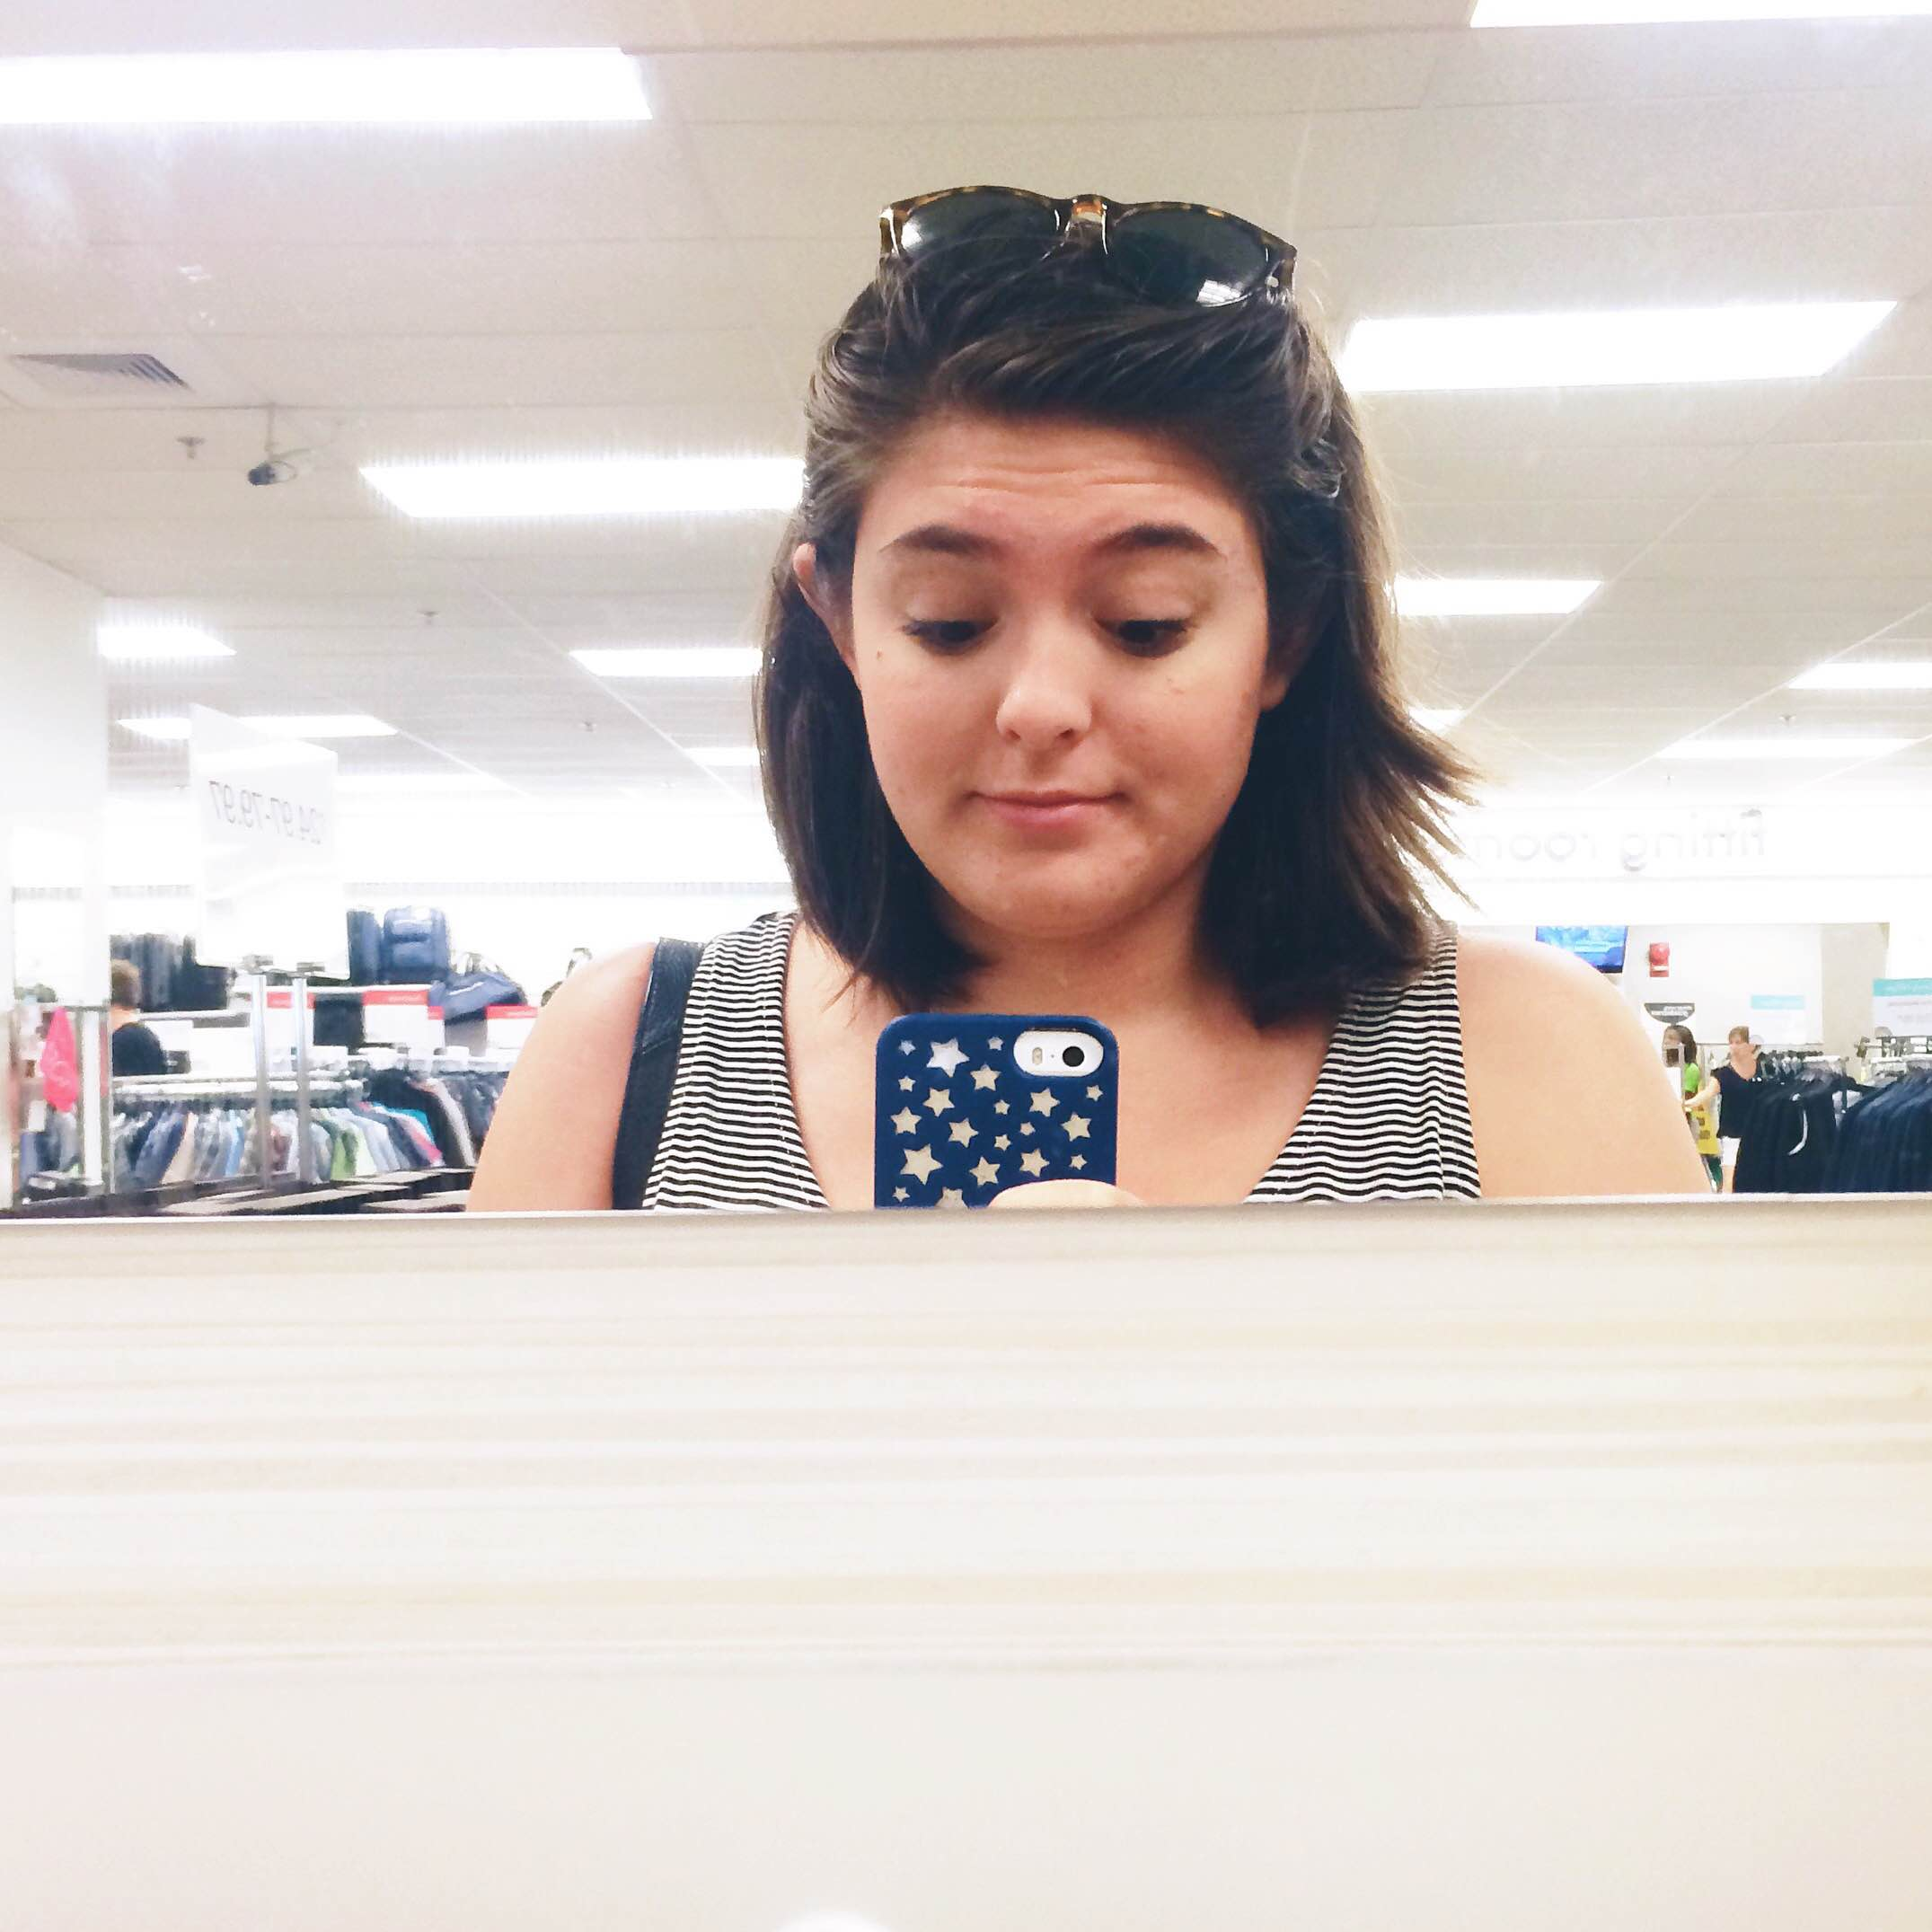 Deciding to love myself in this random store - anxiety, acne, and all.